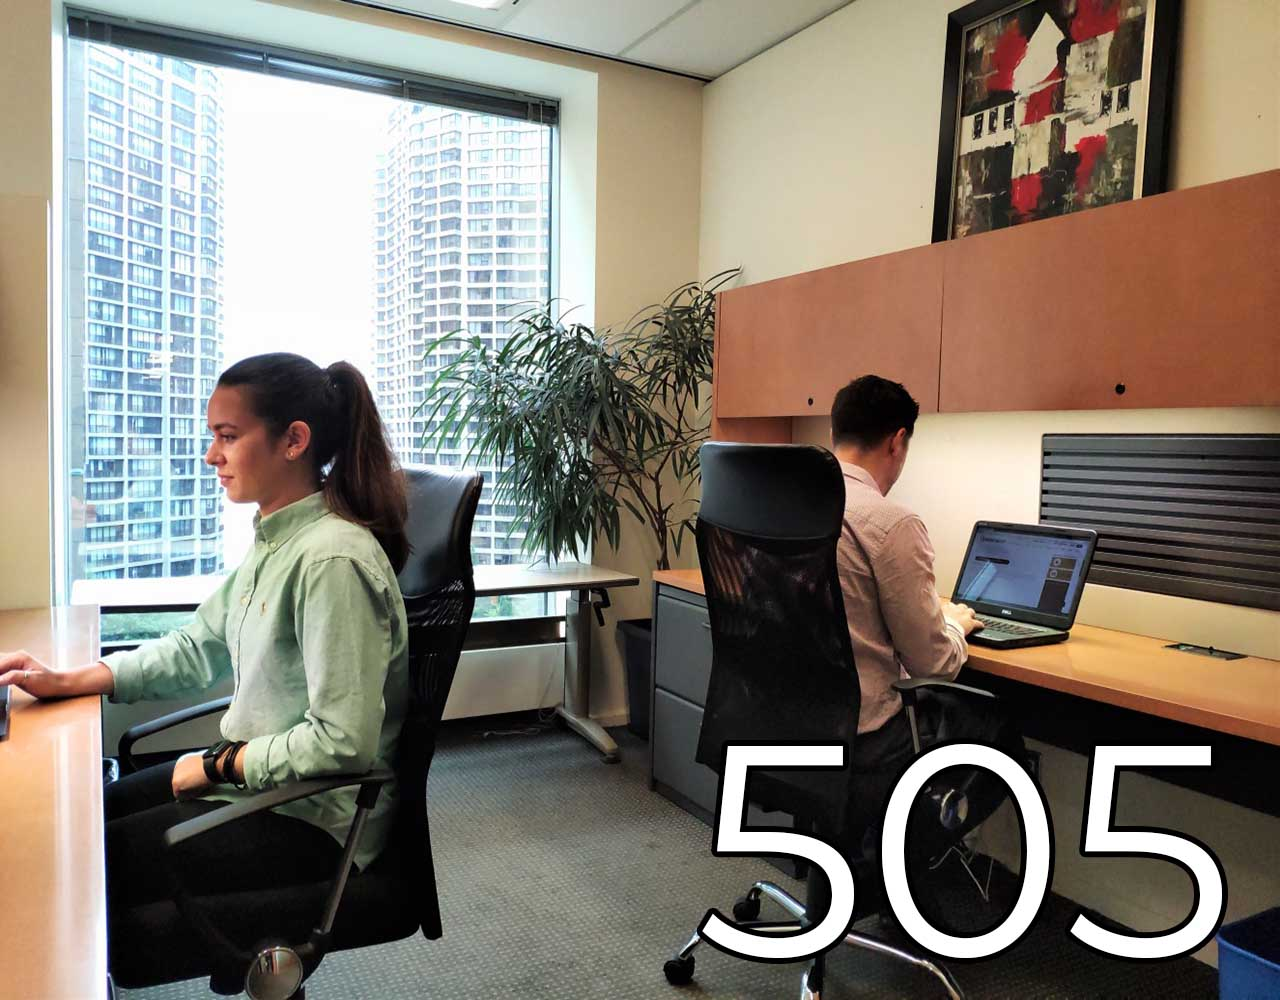 Rent Office 505